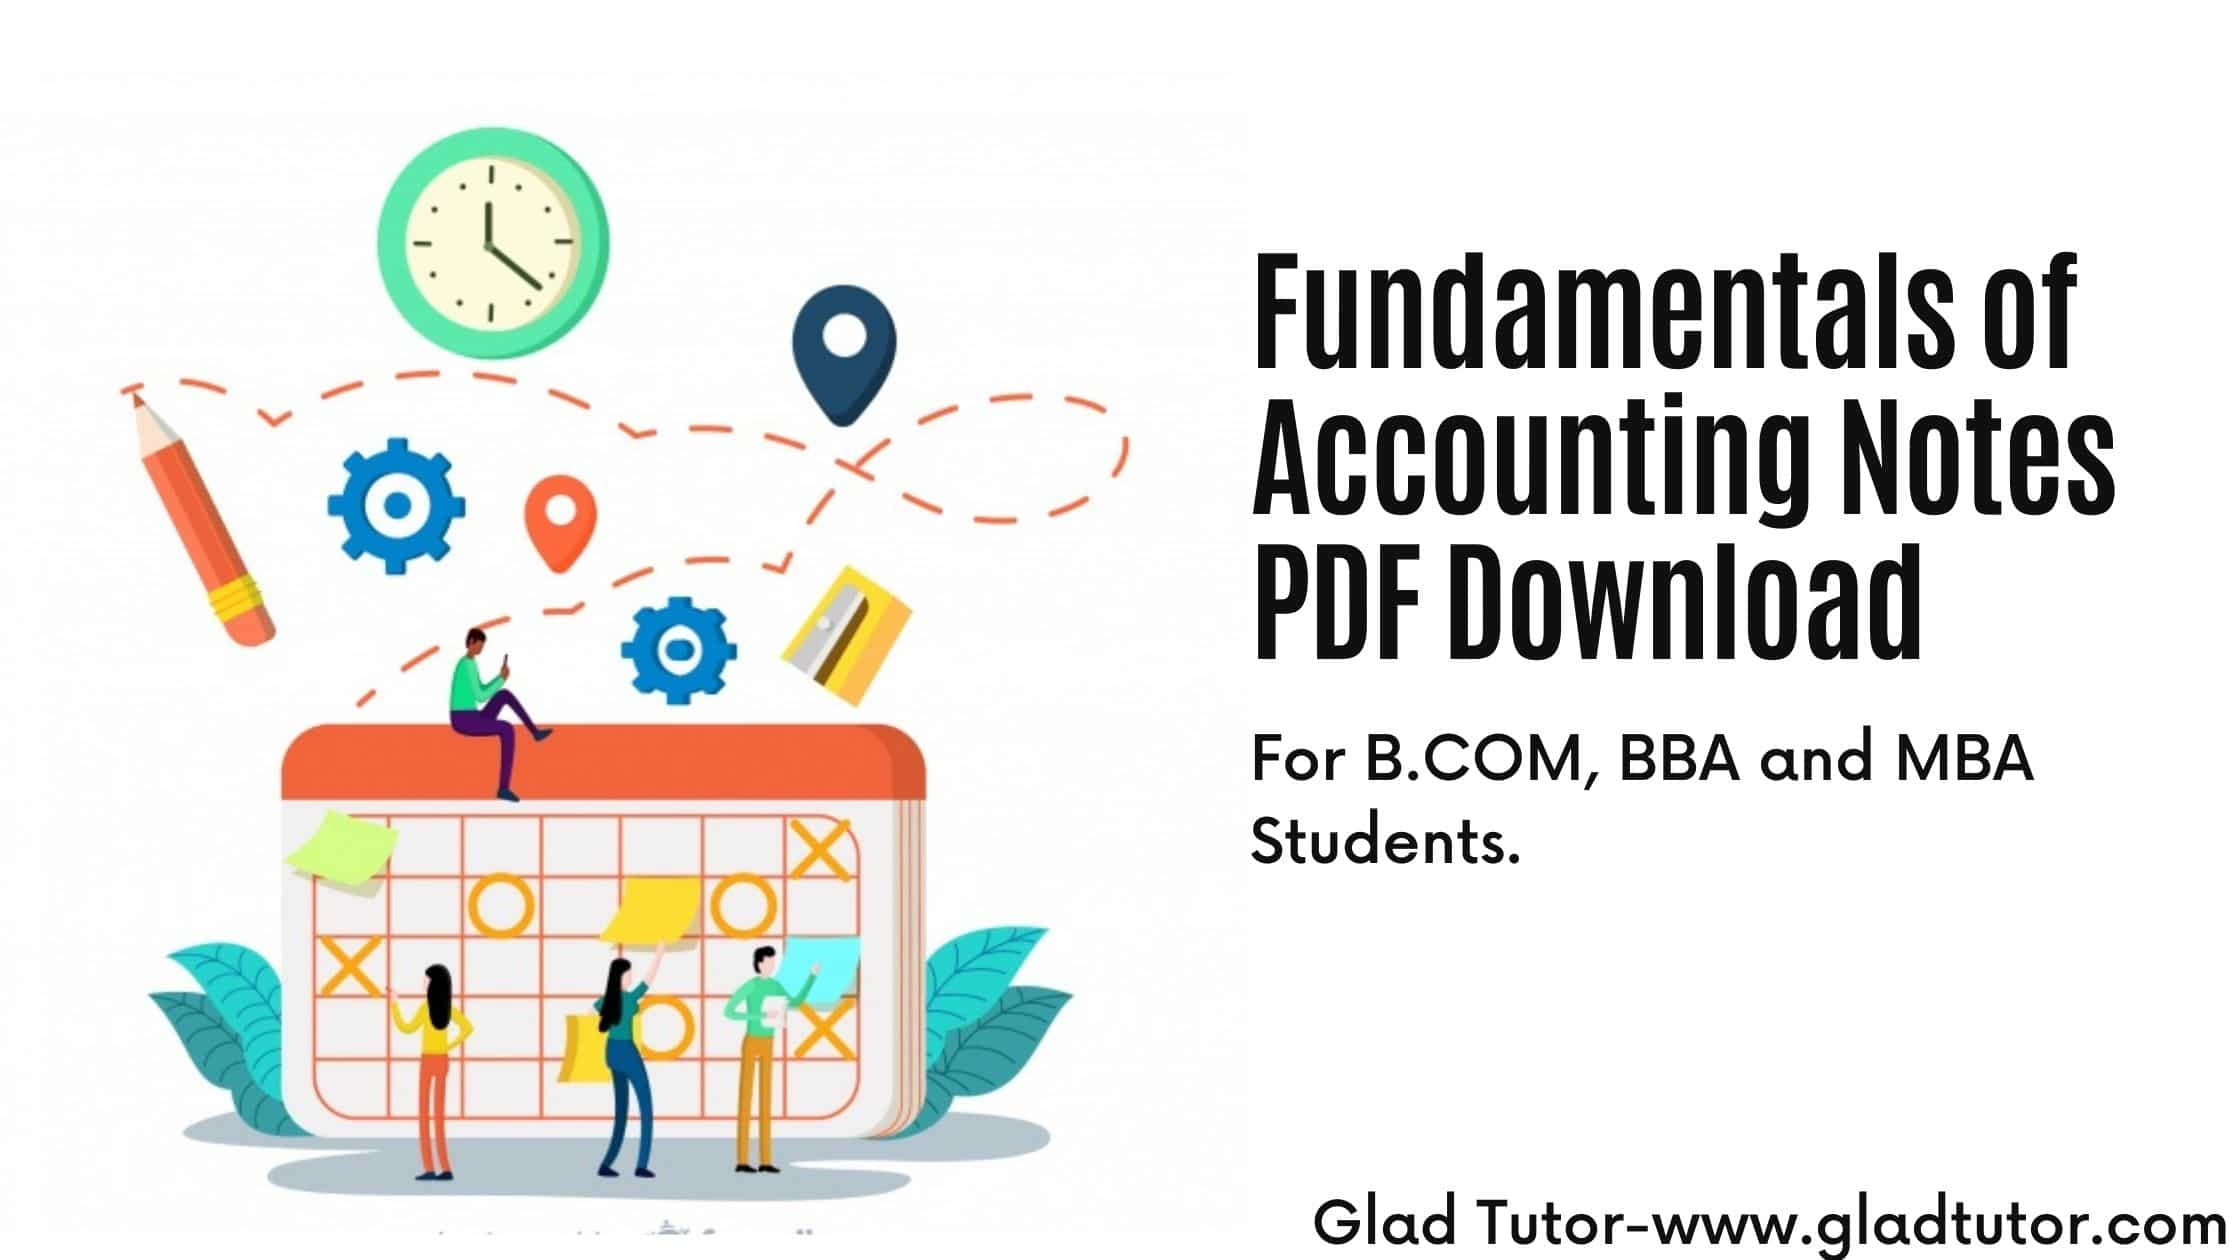 Fundamentals of Accounting Notes